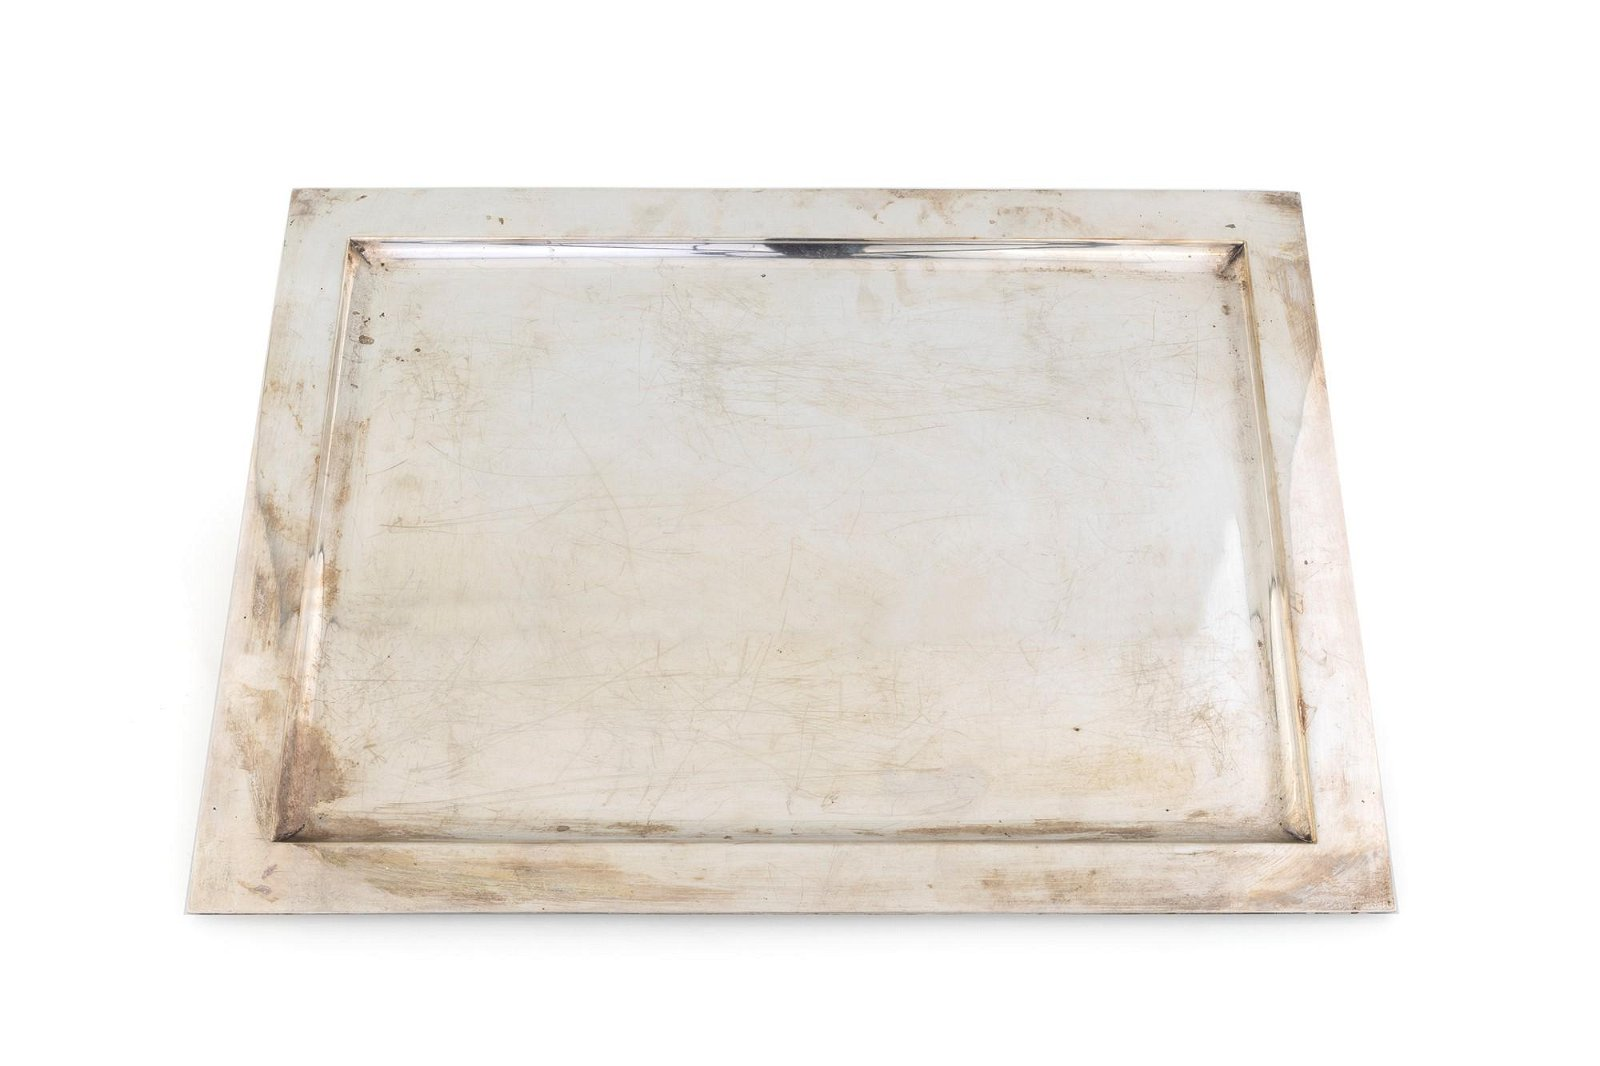 Rectangular silver tray